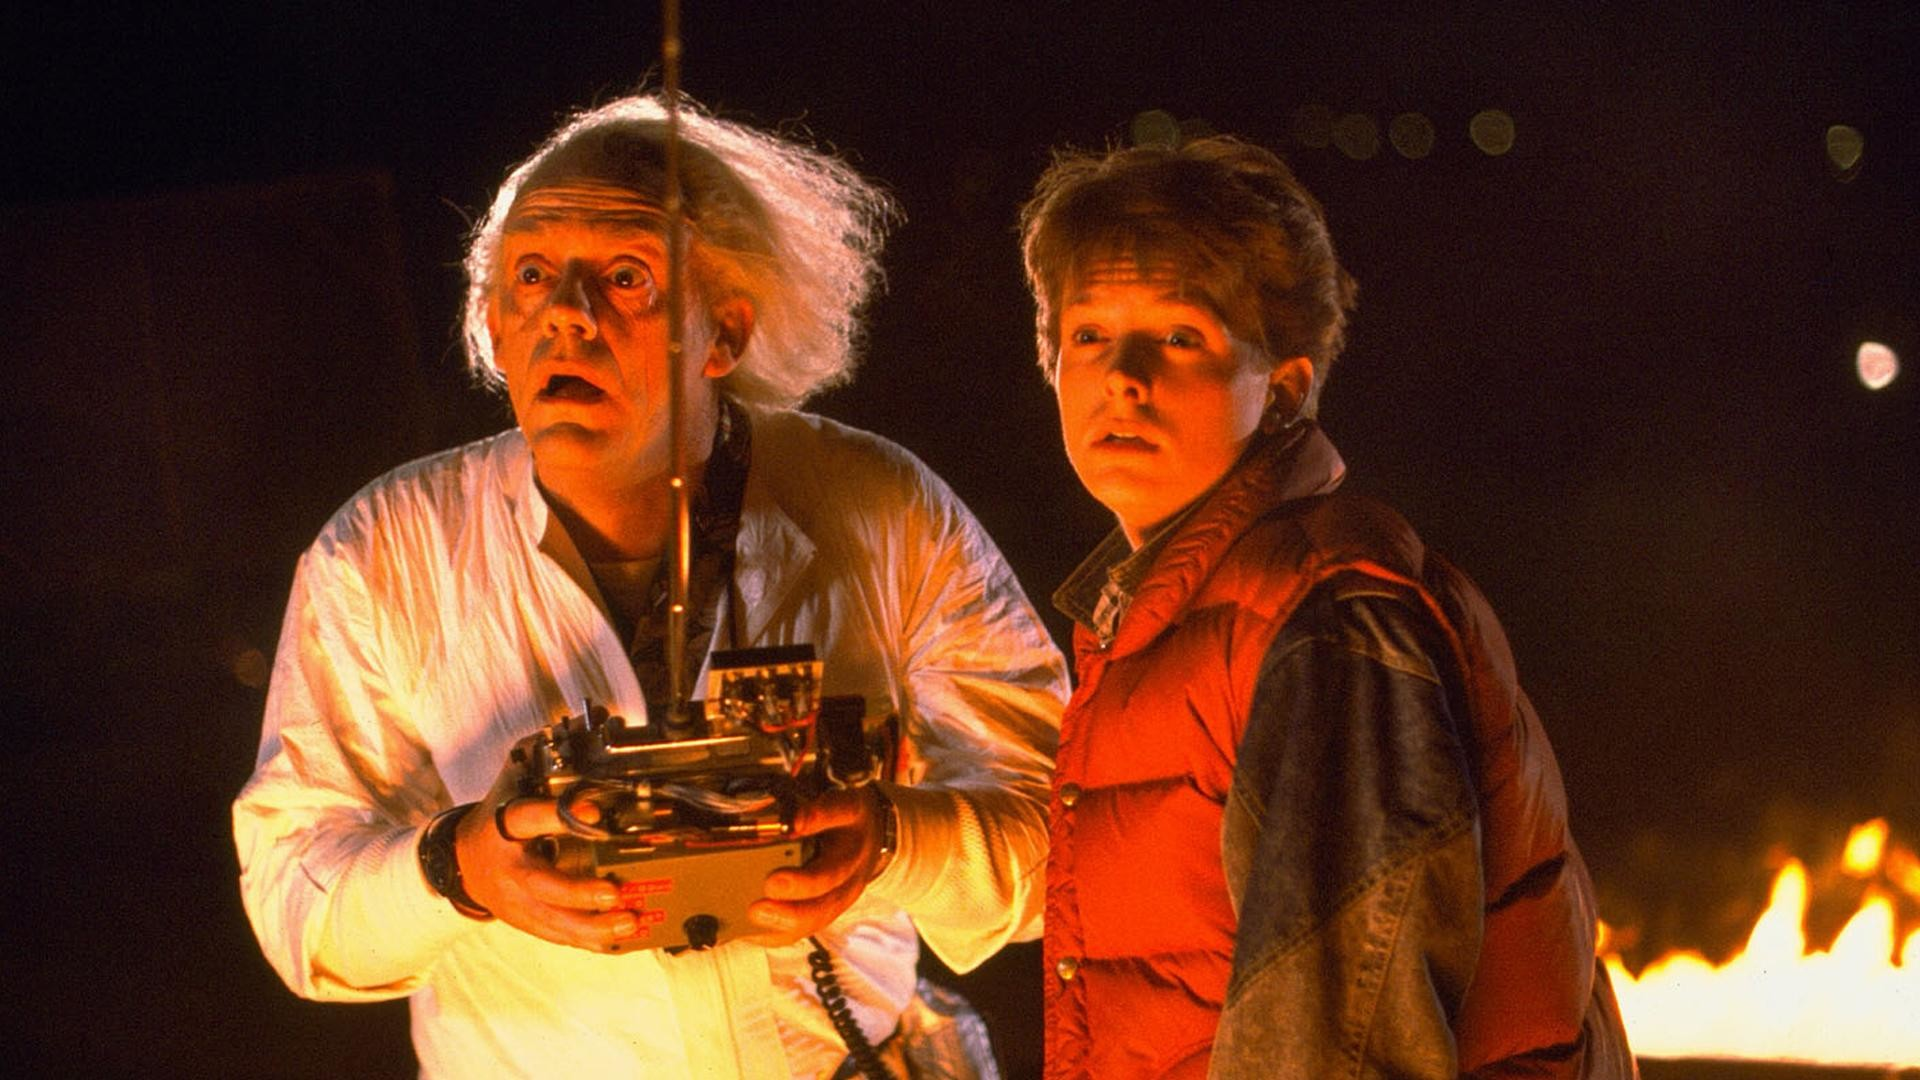 wallpaper.wiki-Back-To-The-Future-Images-PIC-